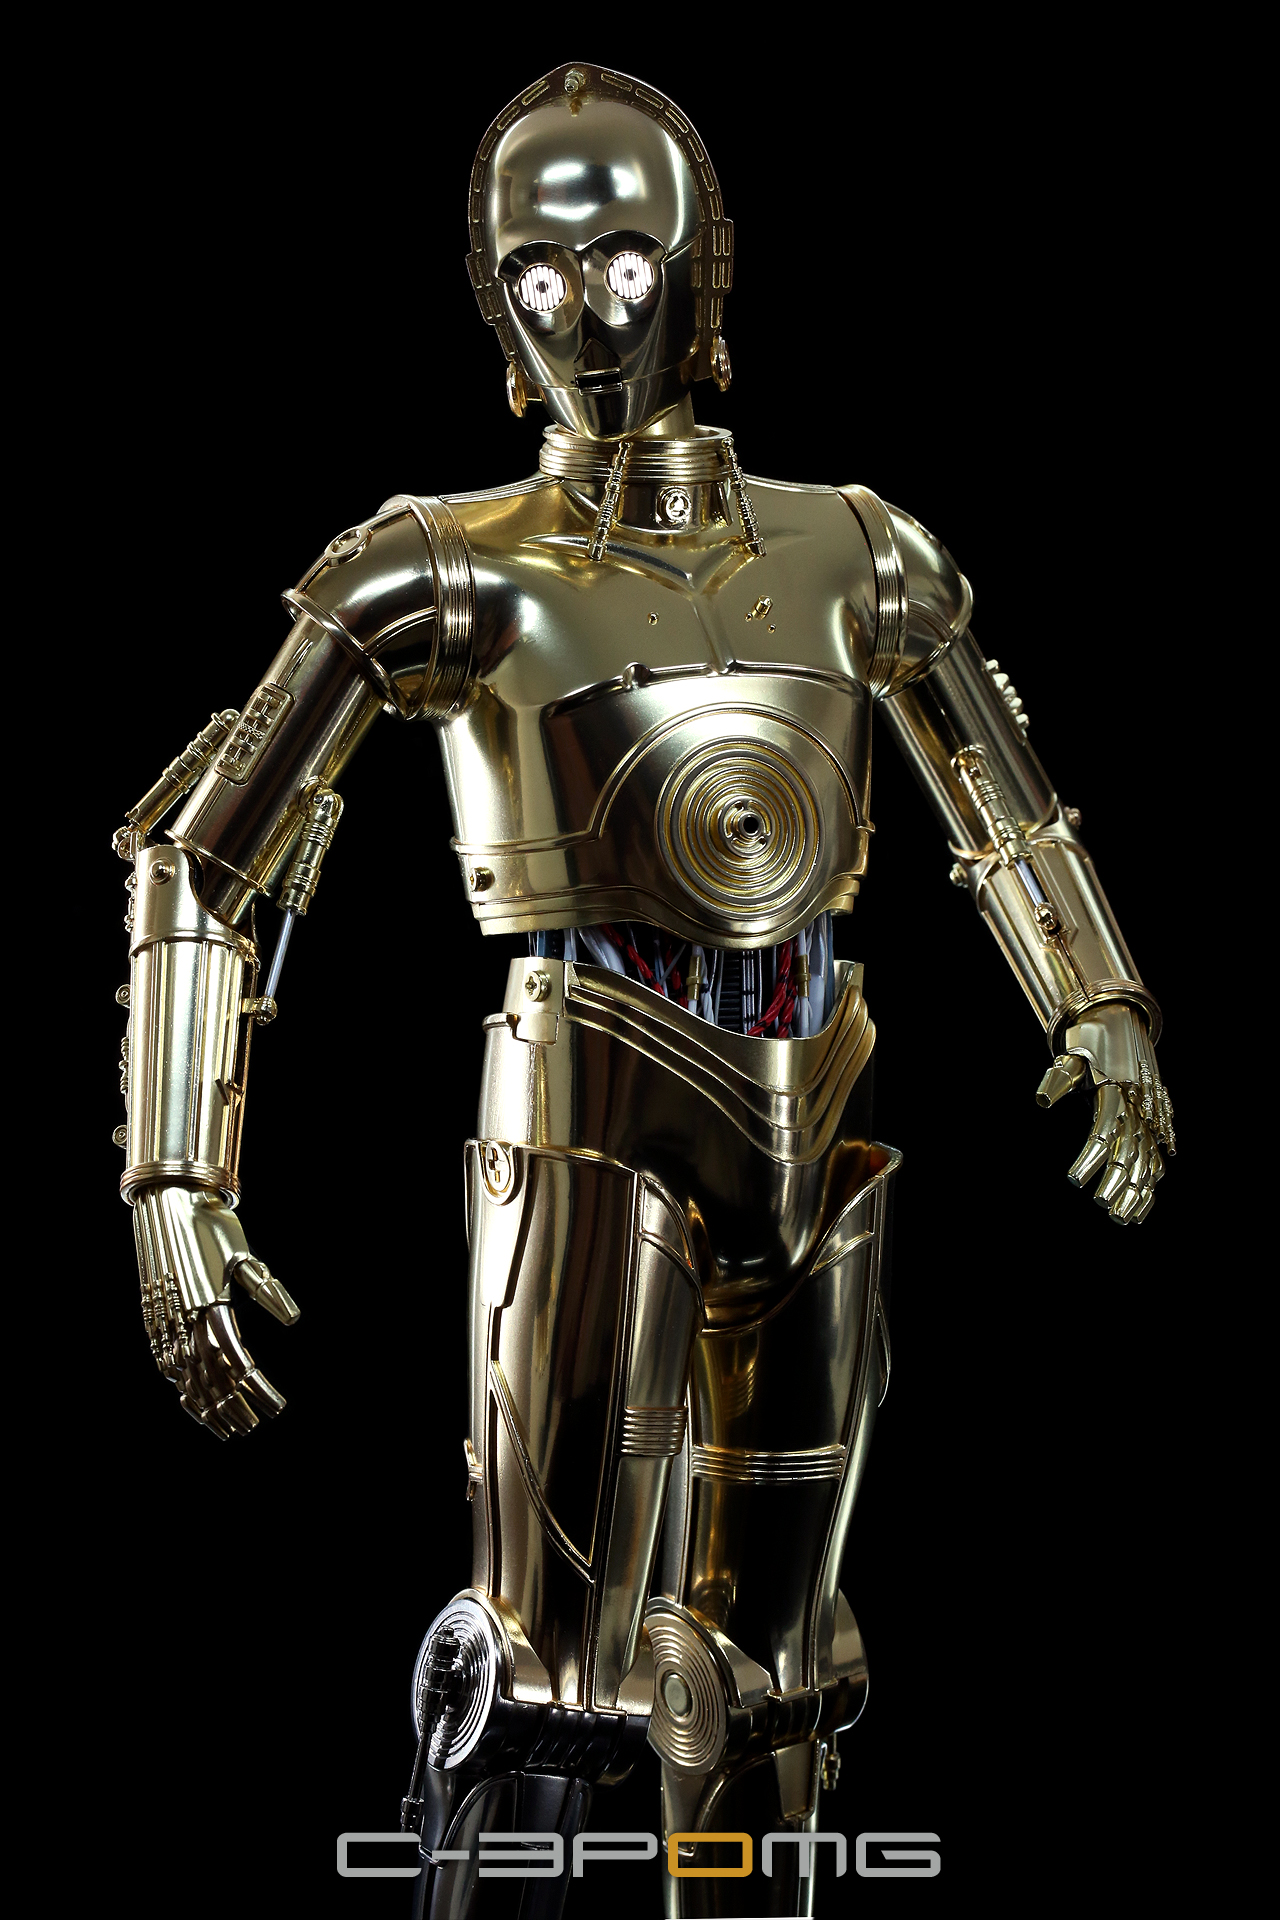 [Bandai] Star Wars: C-3PO - Perfect Model 1/6 scale - LANÇADO!!! - Página 2 C-3PO1031_zpsaceb4b57